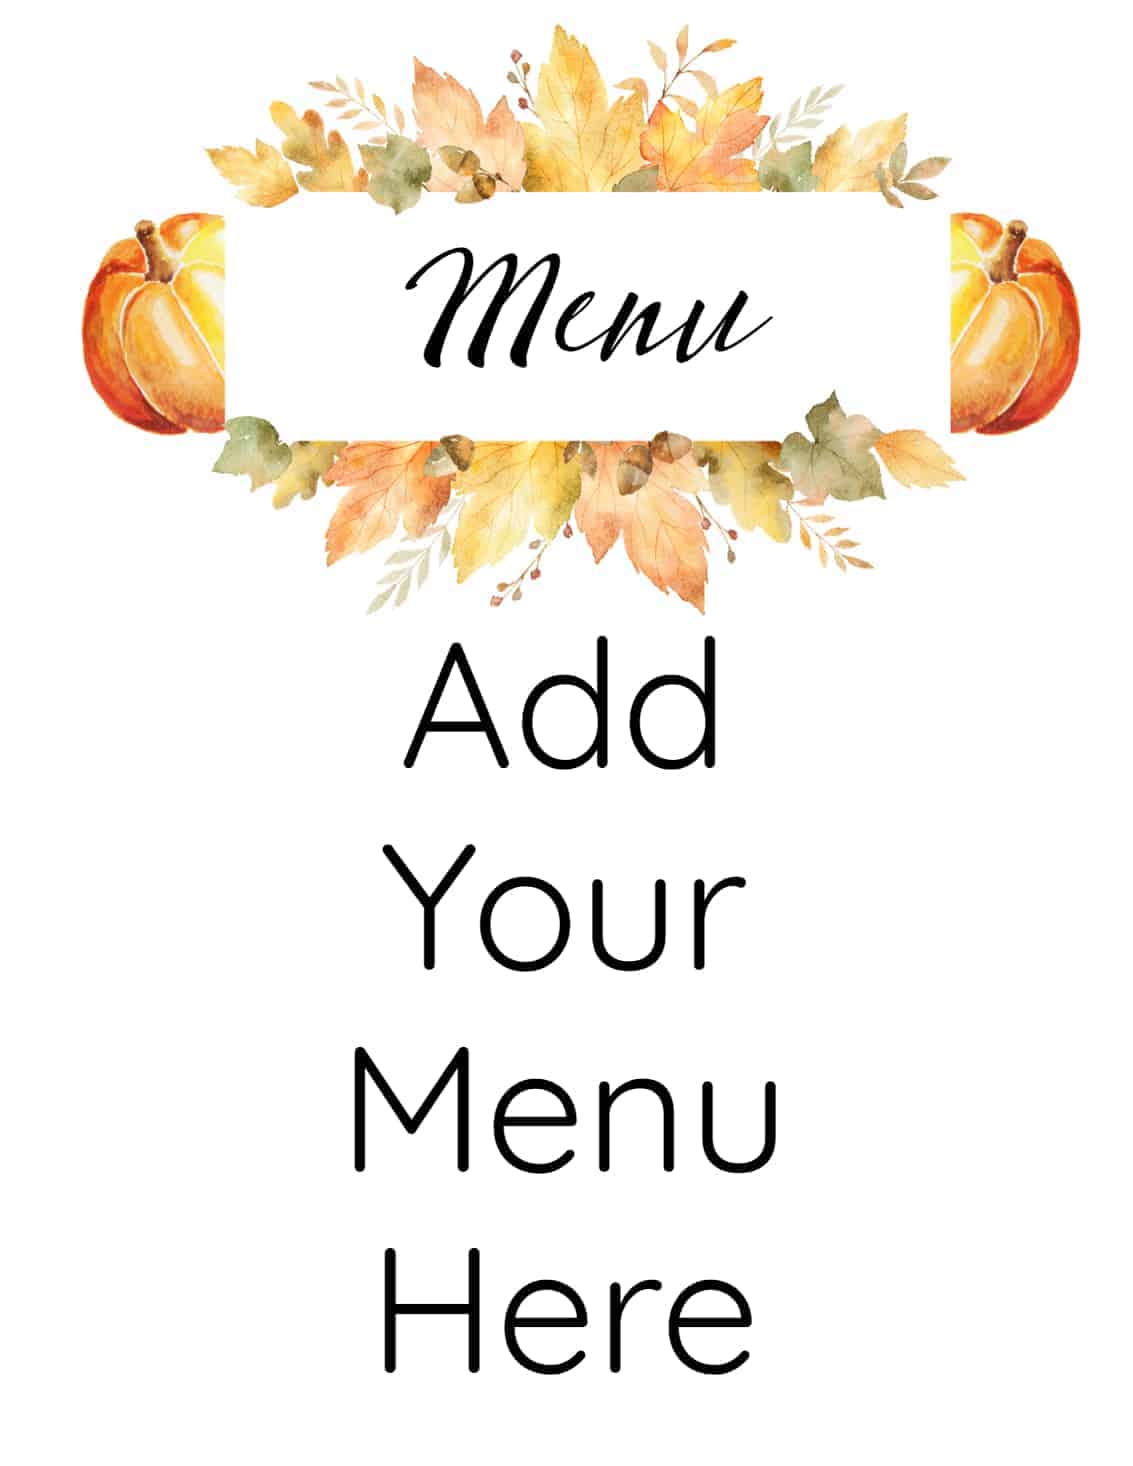 Pin on weekly meal plan ideas for families